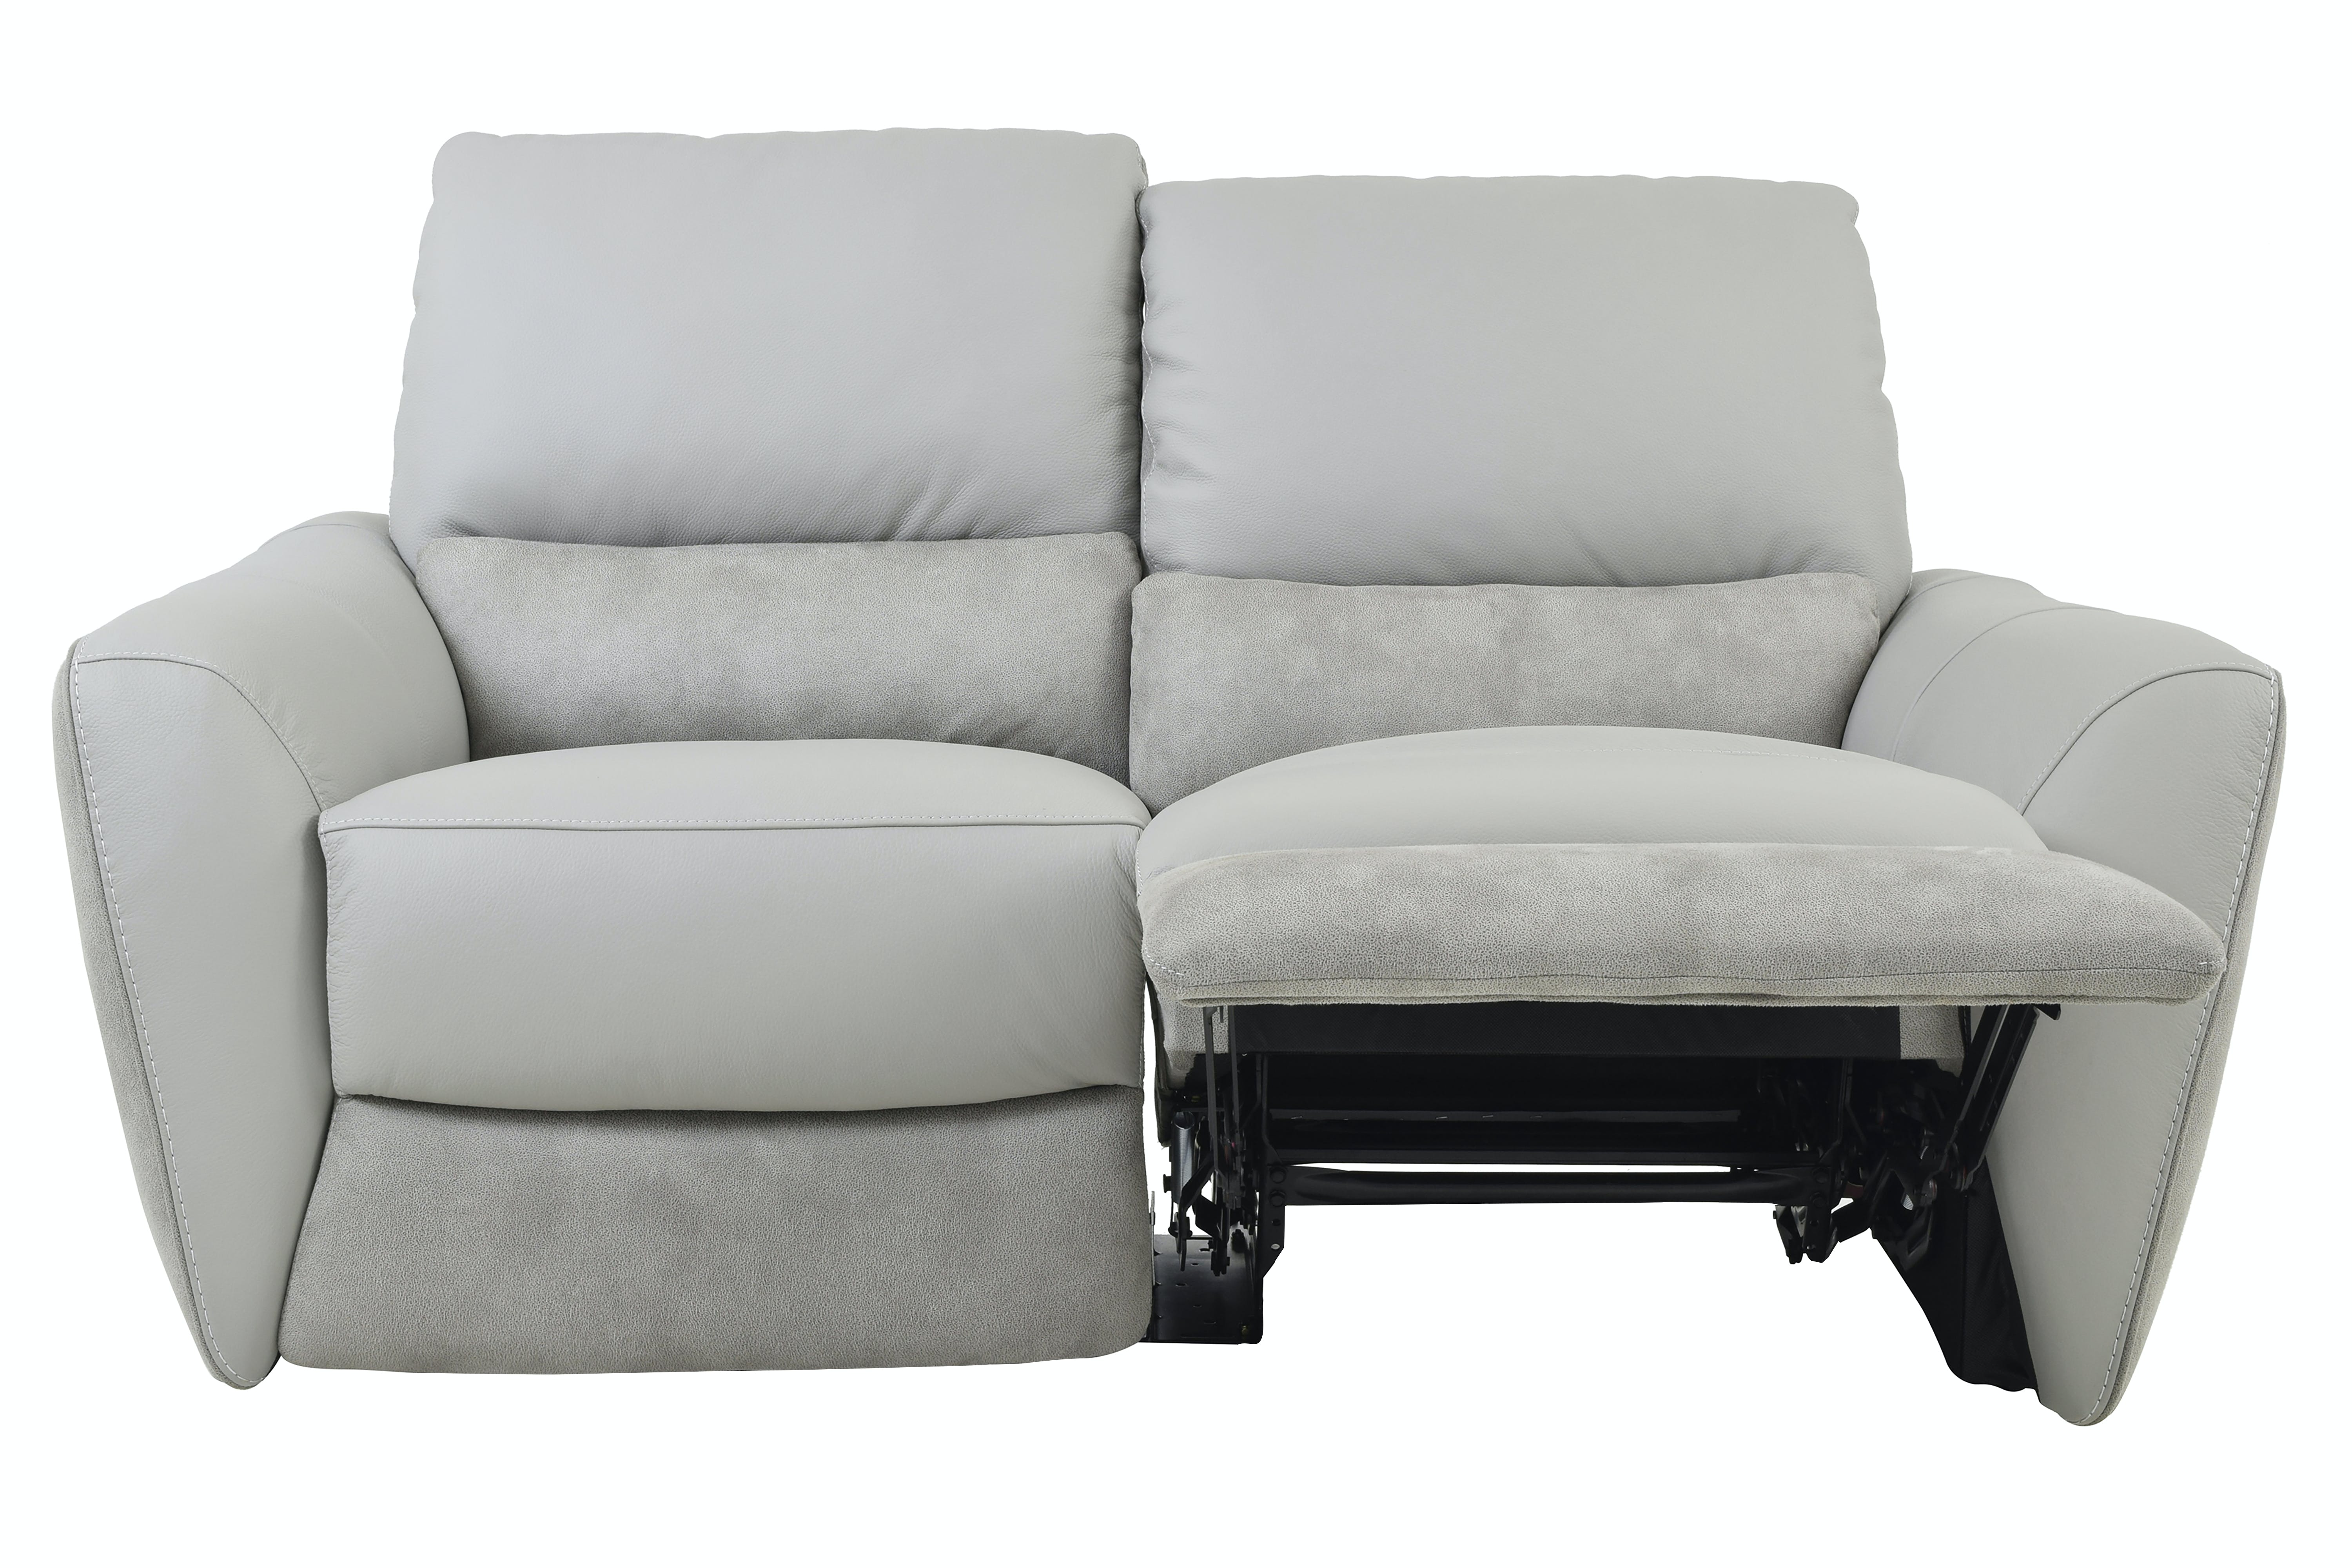 Apollo 2 Seater Recliner Sofa Manual